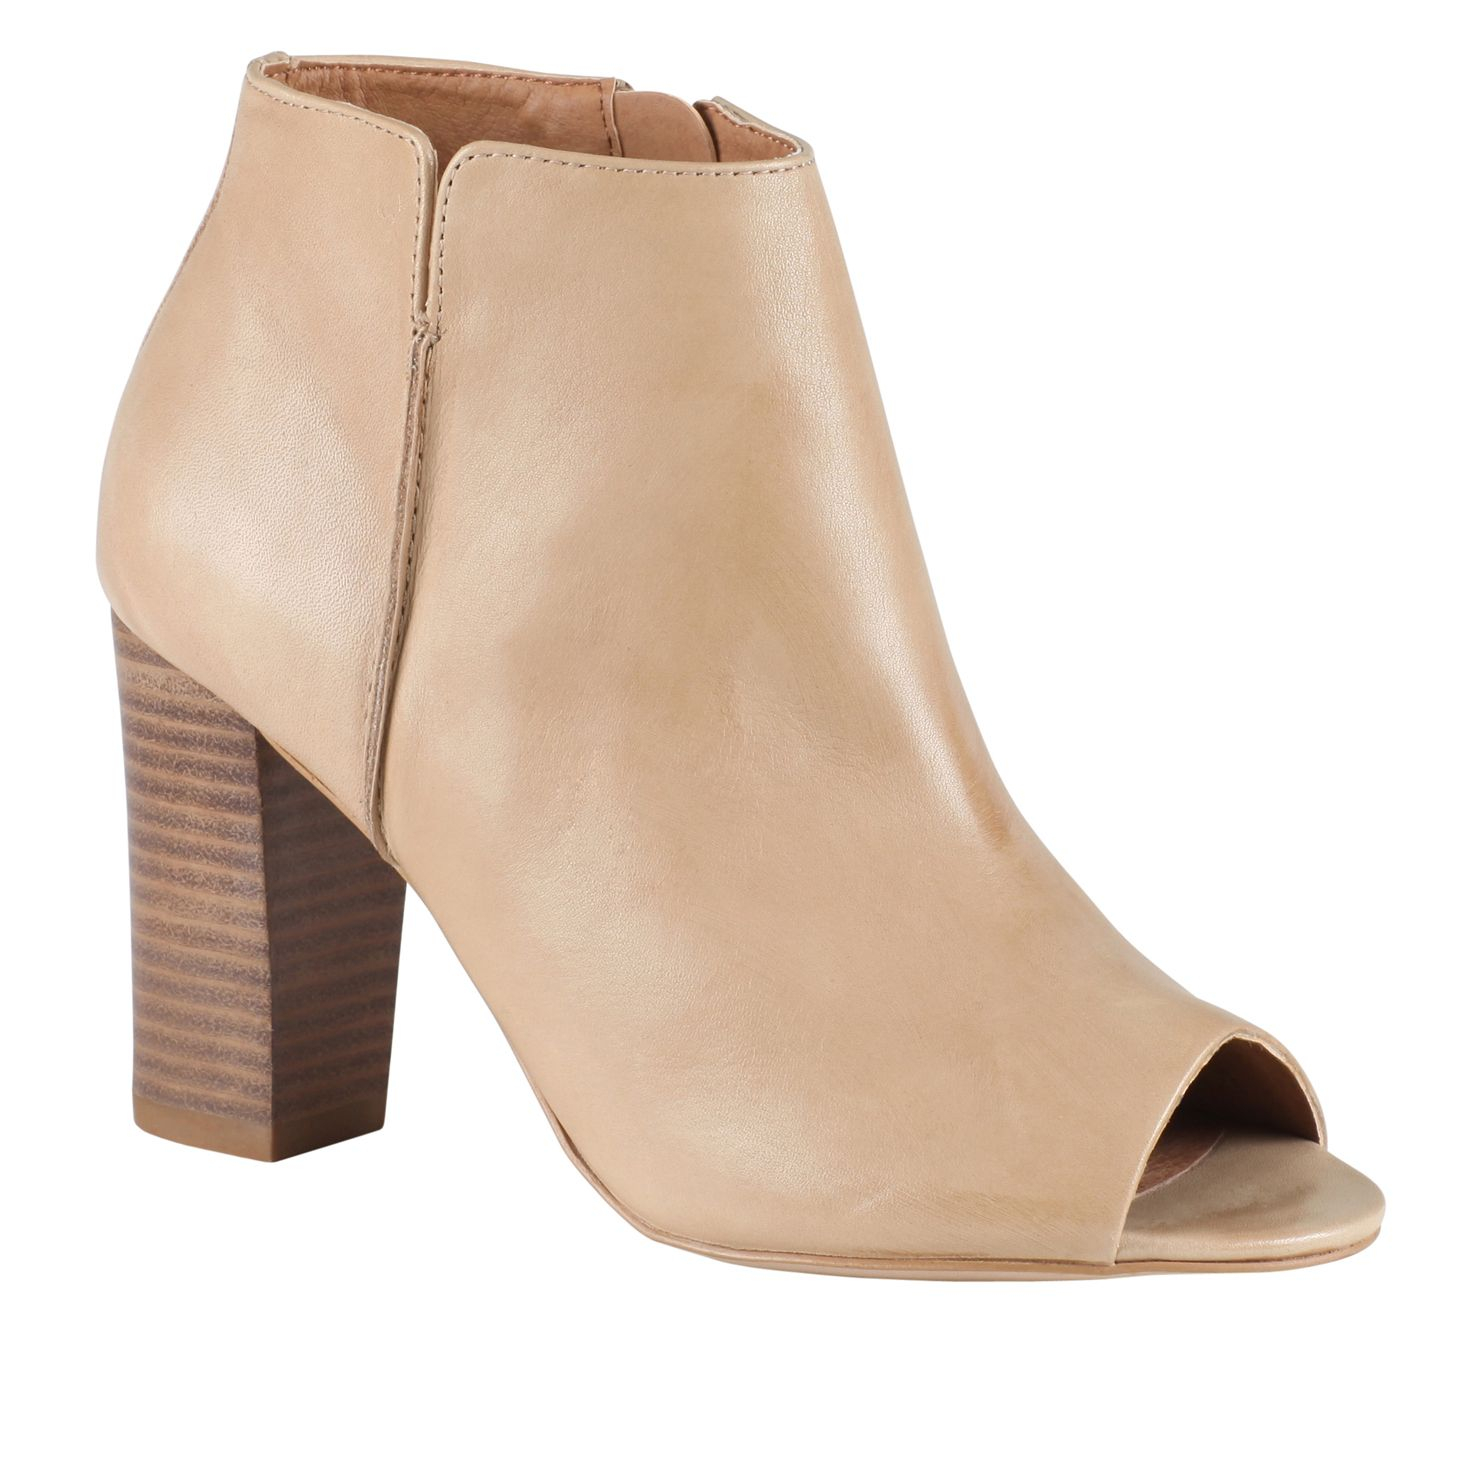 Aldo Baita Block Heel Peep Toe Ankle Boots in Natural | Lyst